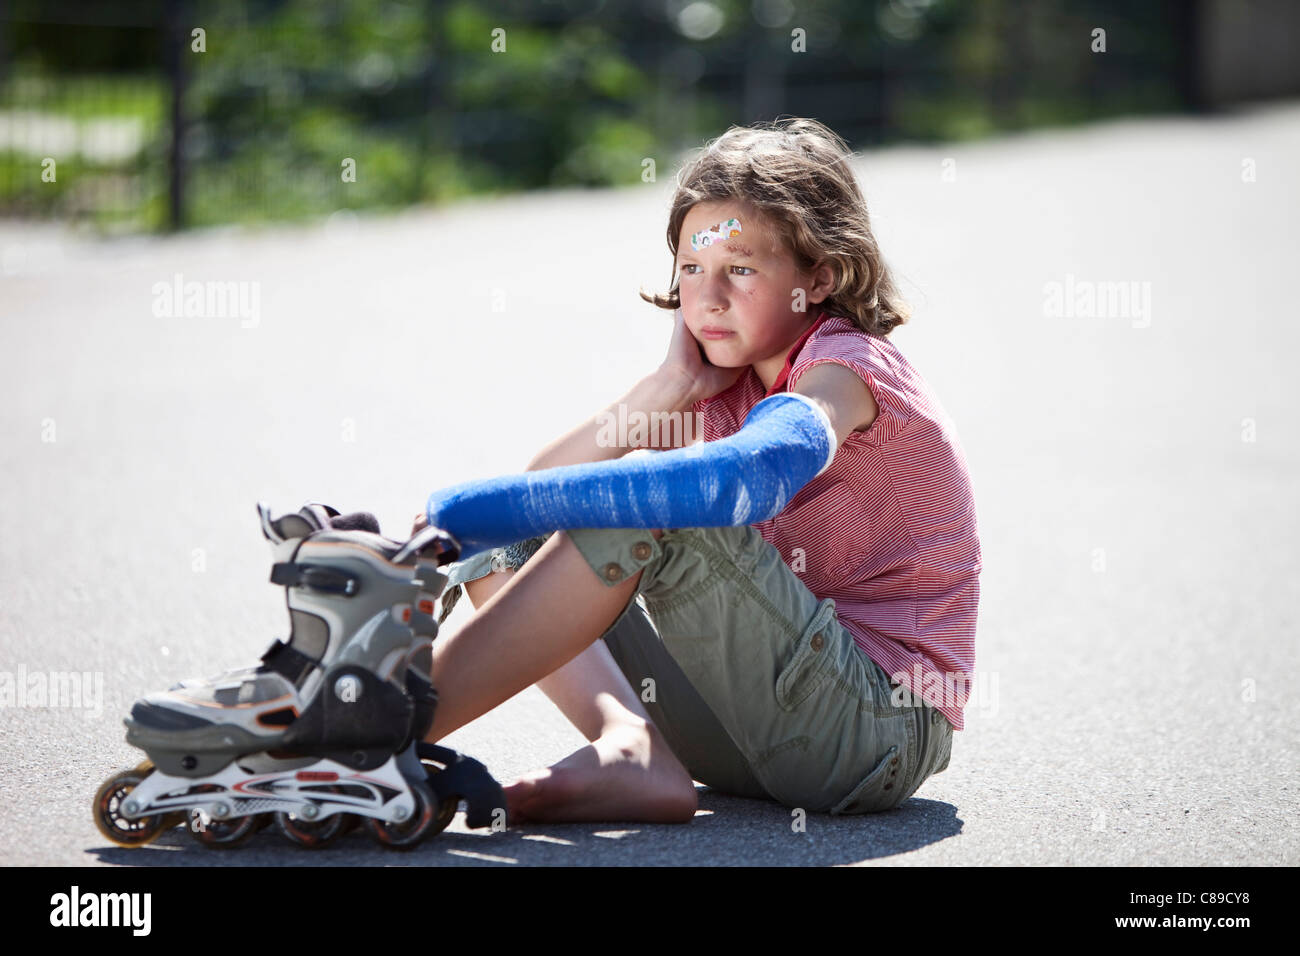 Roller skating rink accidents